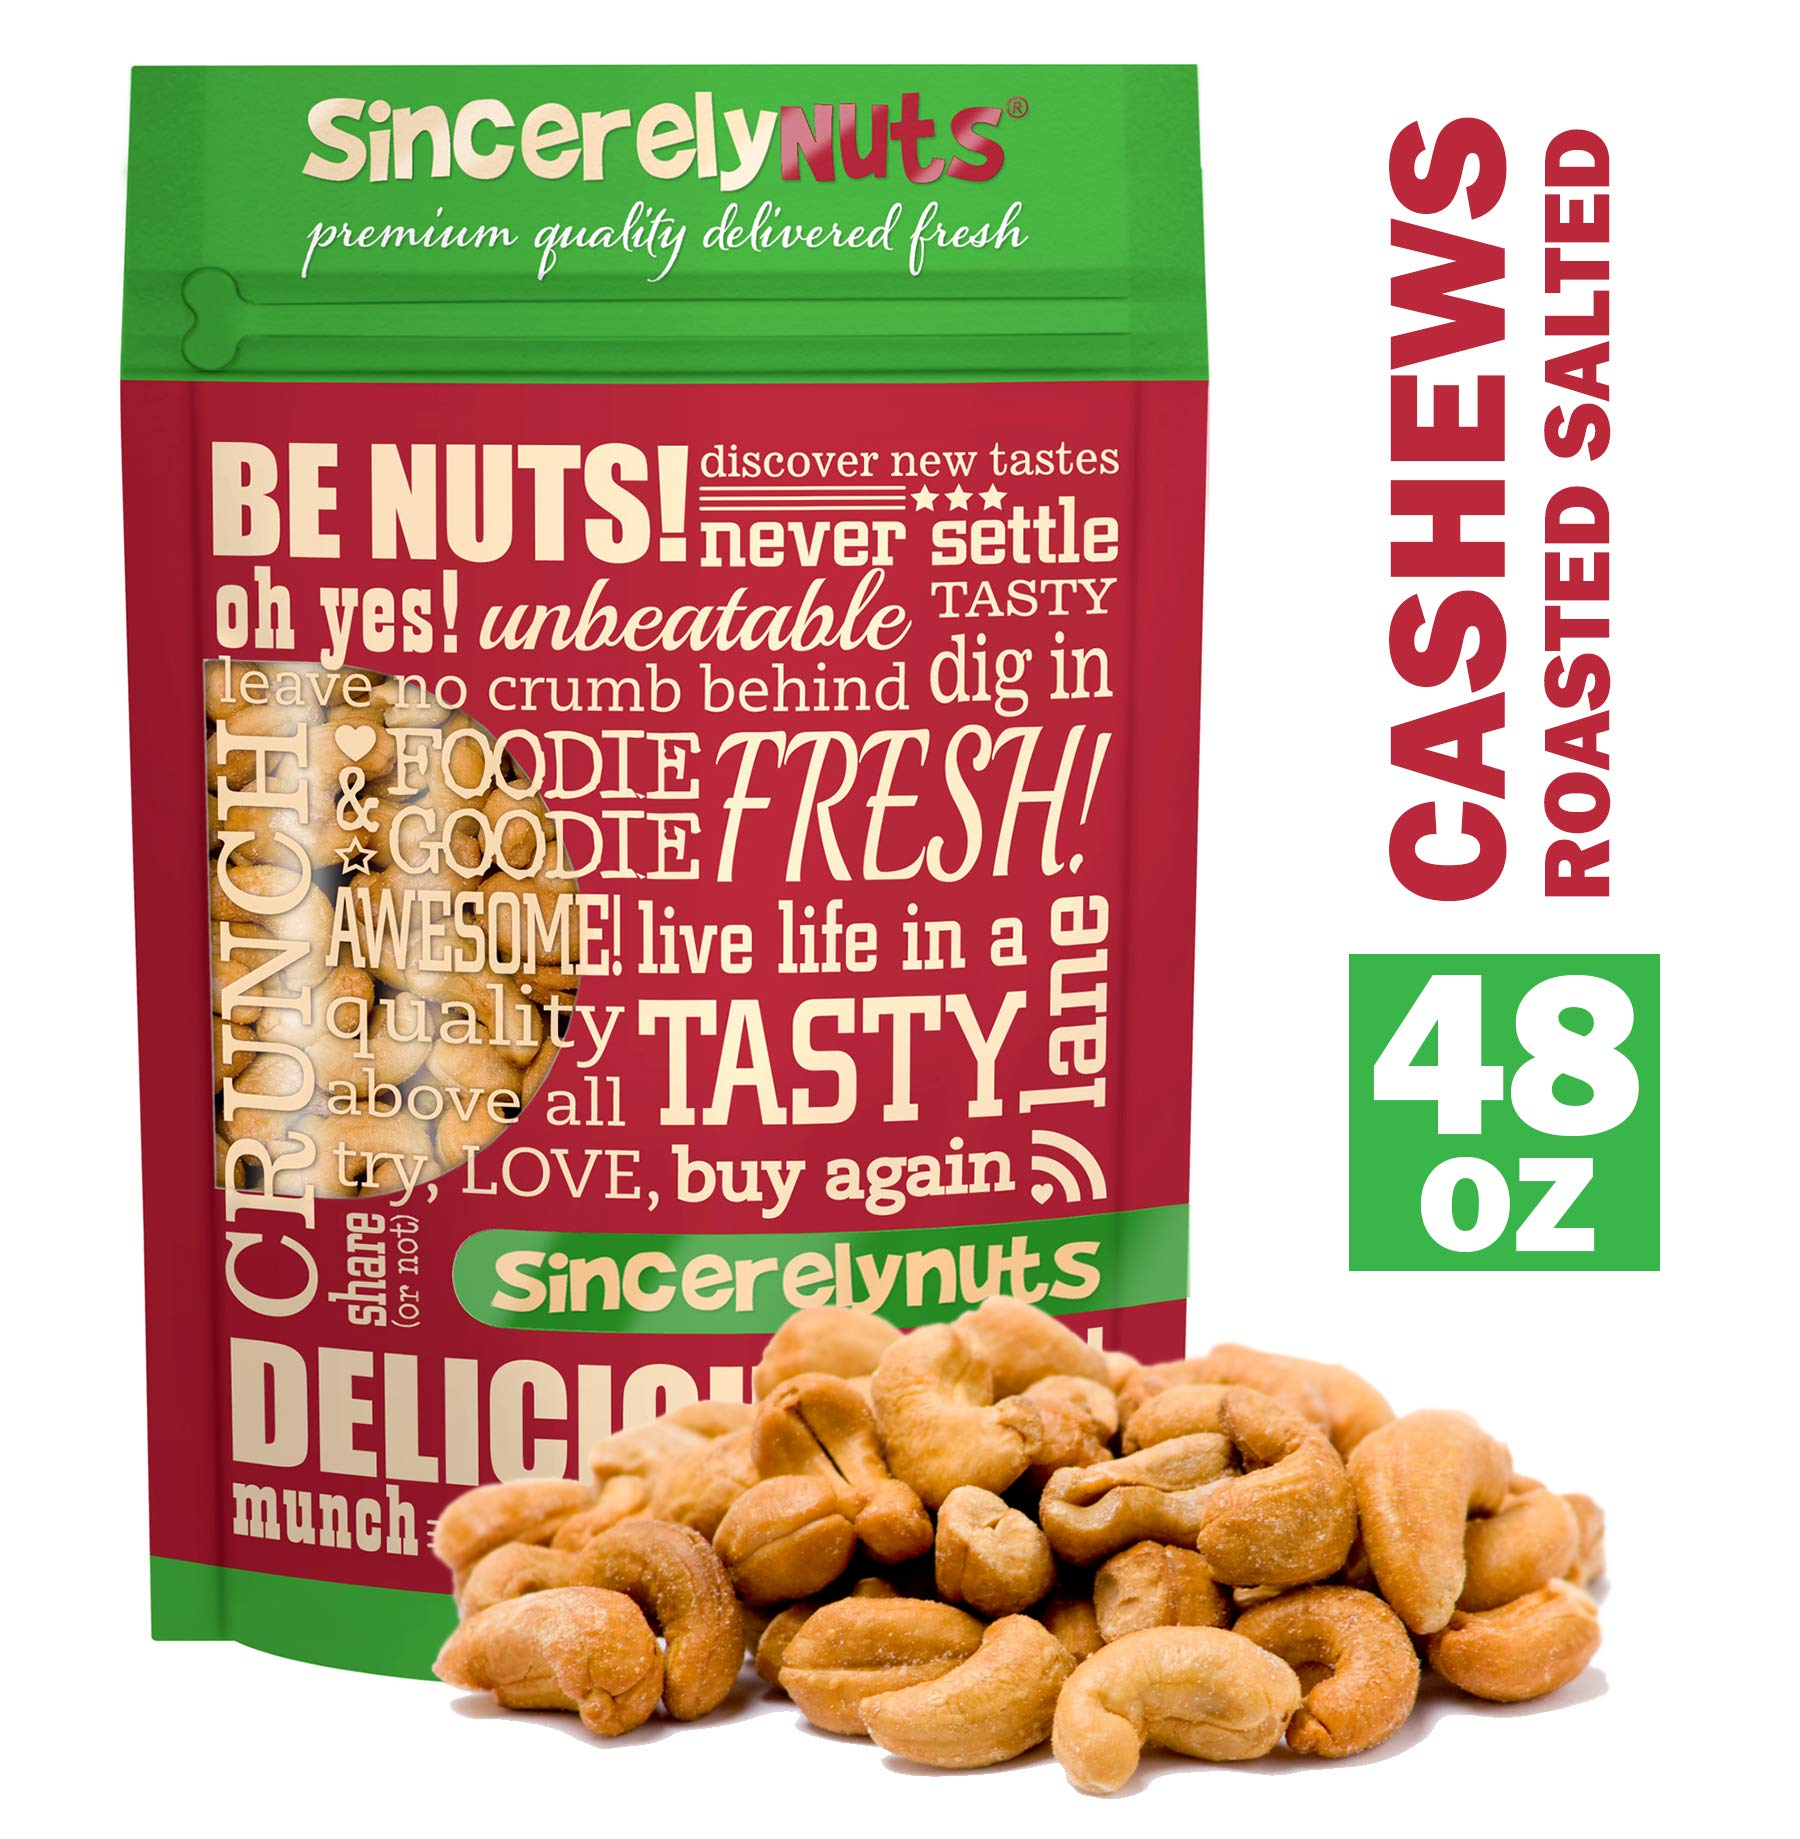 Sincerely Nuts - Whole Cashews Roasted and Salted | Three Lb. Bag | Deluxe Kosher Snack Food | Healthy Source of Protein, Vitamin & Mineral Nutritional Content | Gourmet Quality Vegan Cashew Nut